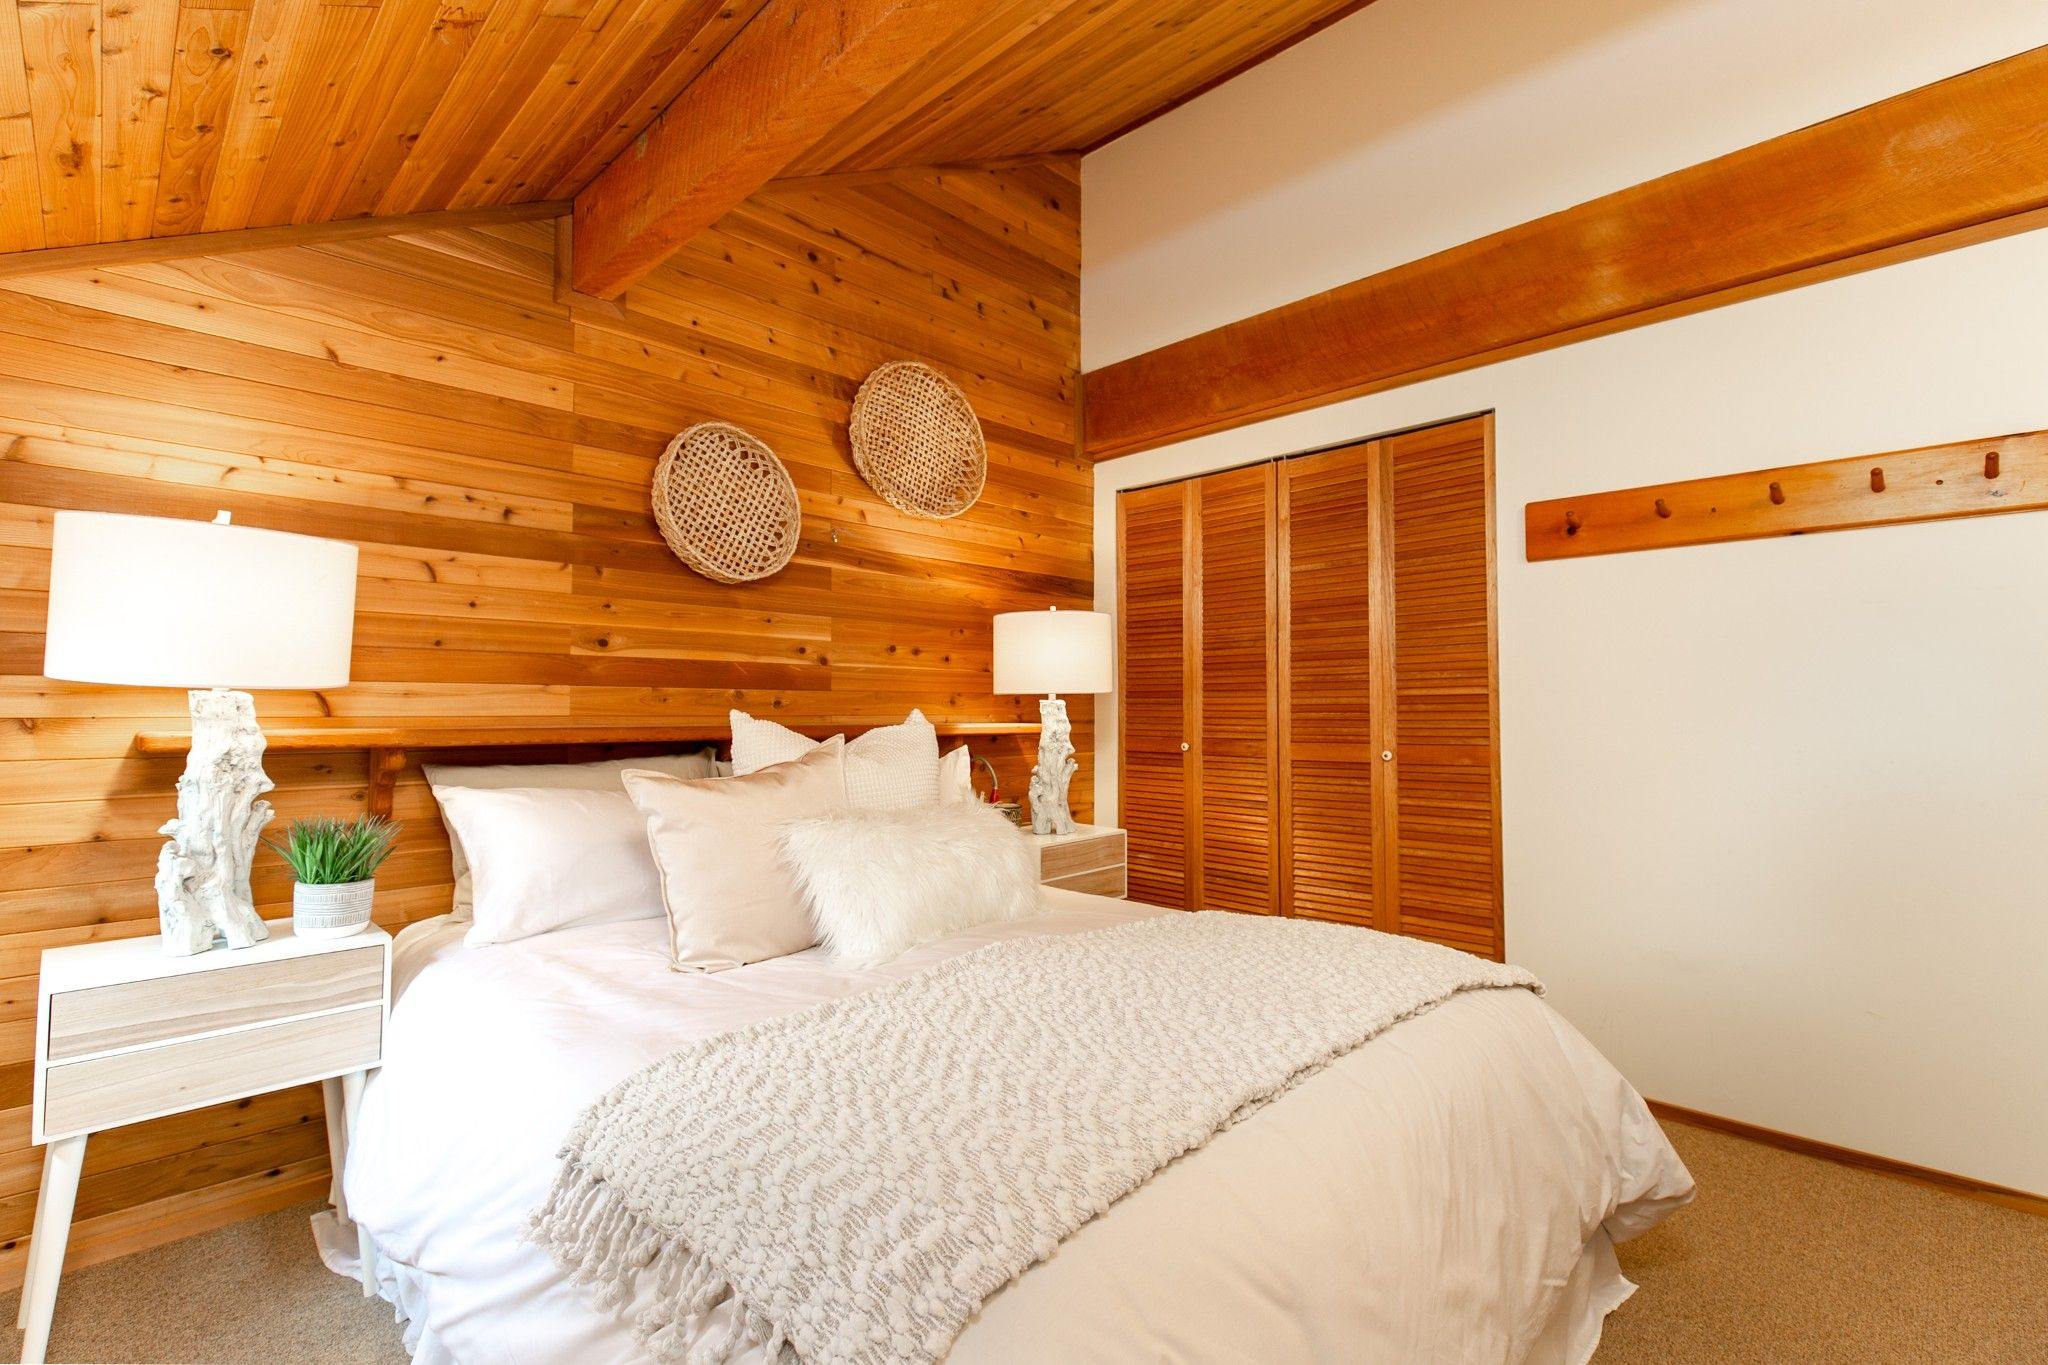 Photo 4: Photos: C1 6900 Crabapple Drive in Whistler: Townhouse for sale